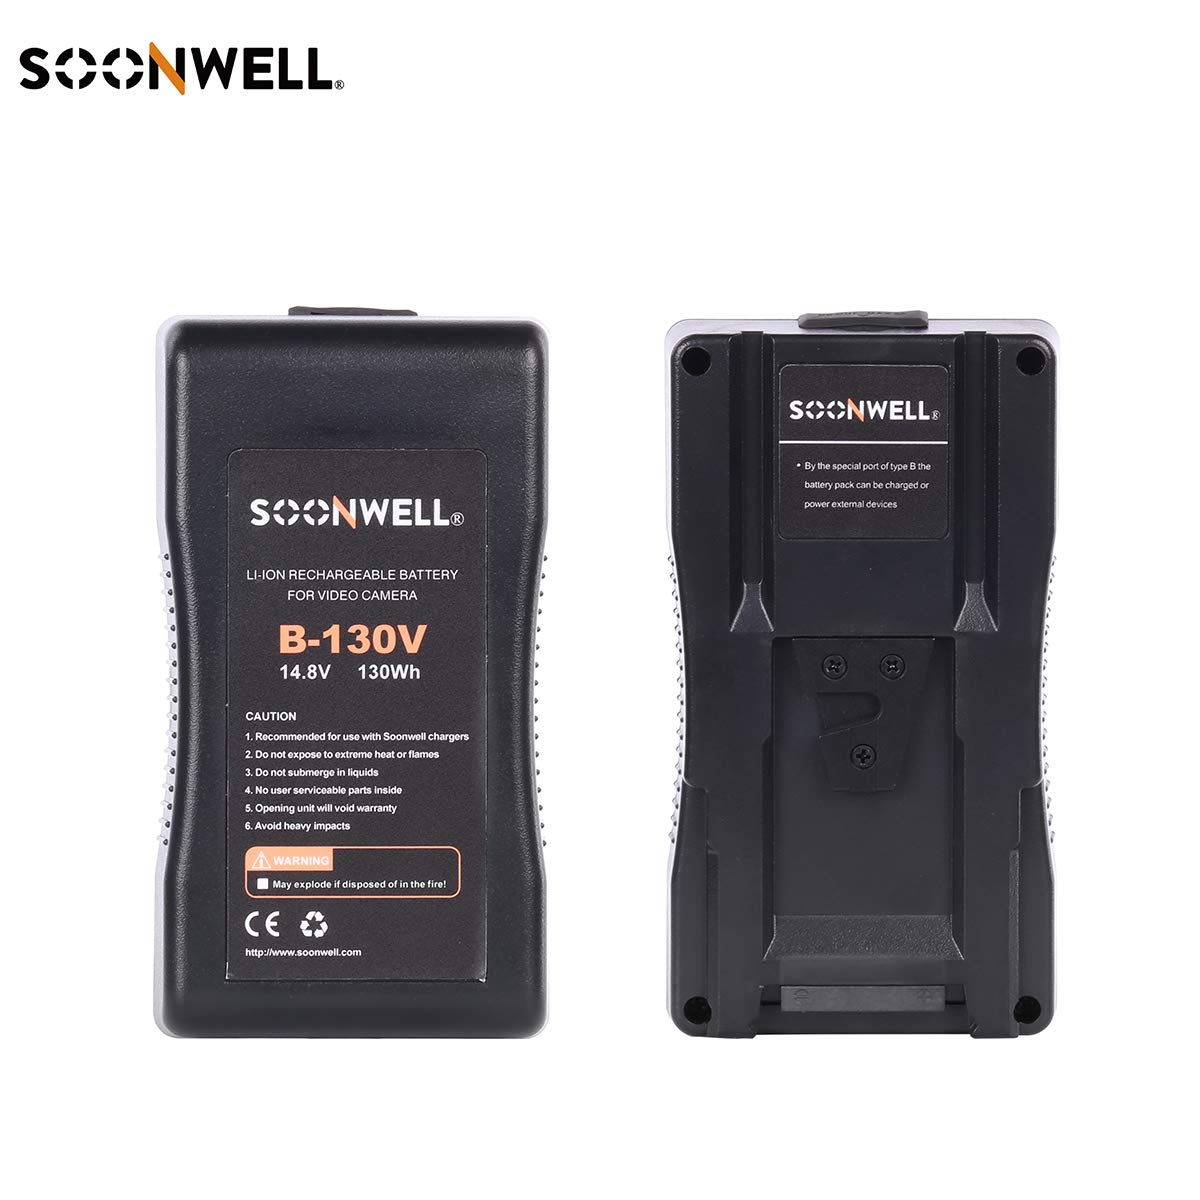 SOONWELL 130Wh Li-ion Camera Battery V-Mount Rechargeable Battery Compatible Sony Replacement for DSLR Video Camera by SOONWELL